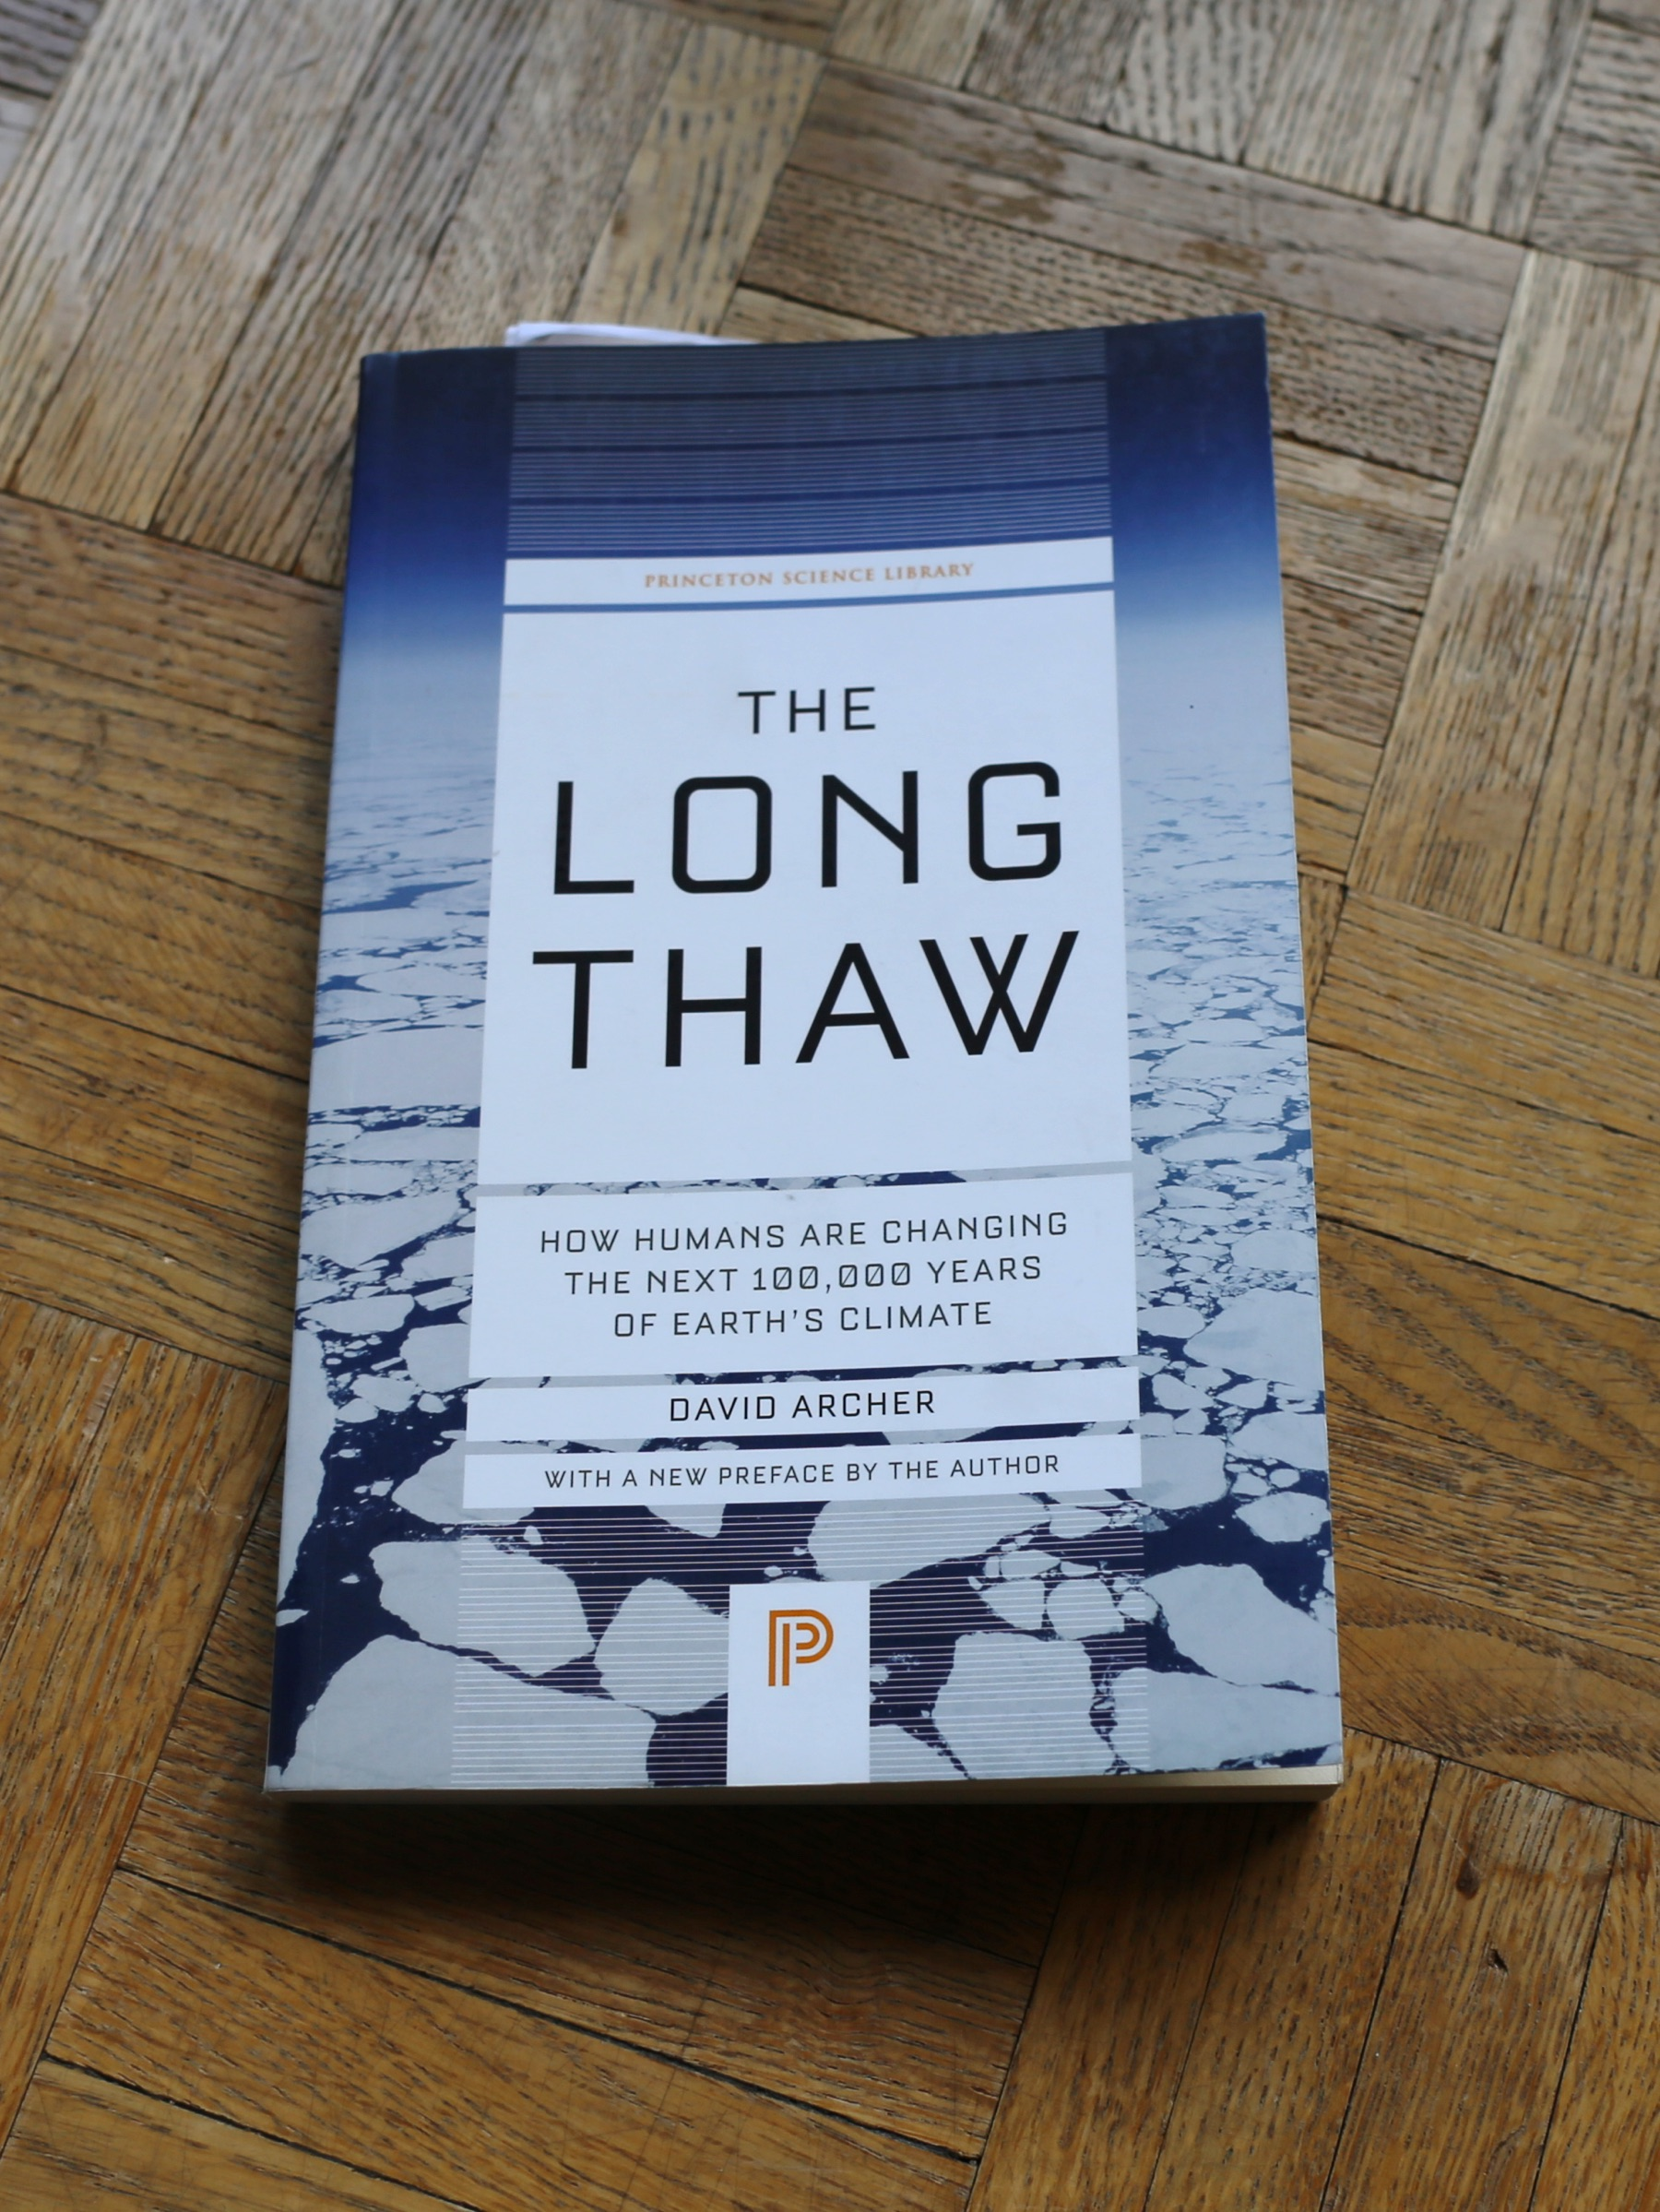 The Long Thaw How Humans Are Changing the Next 100,000 Years of Earth/'s Climate